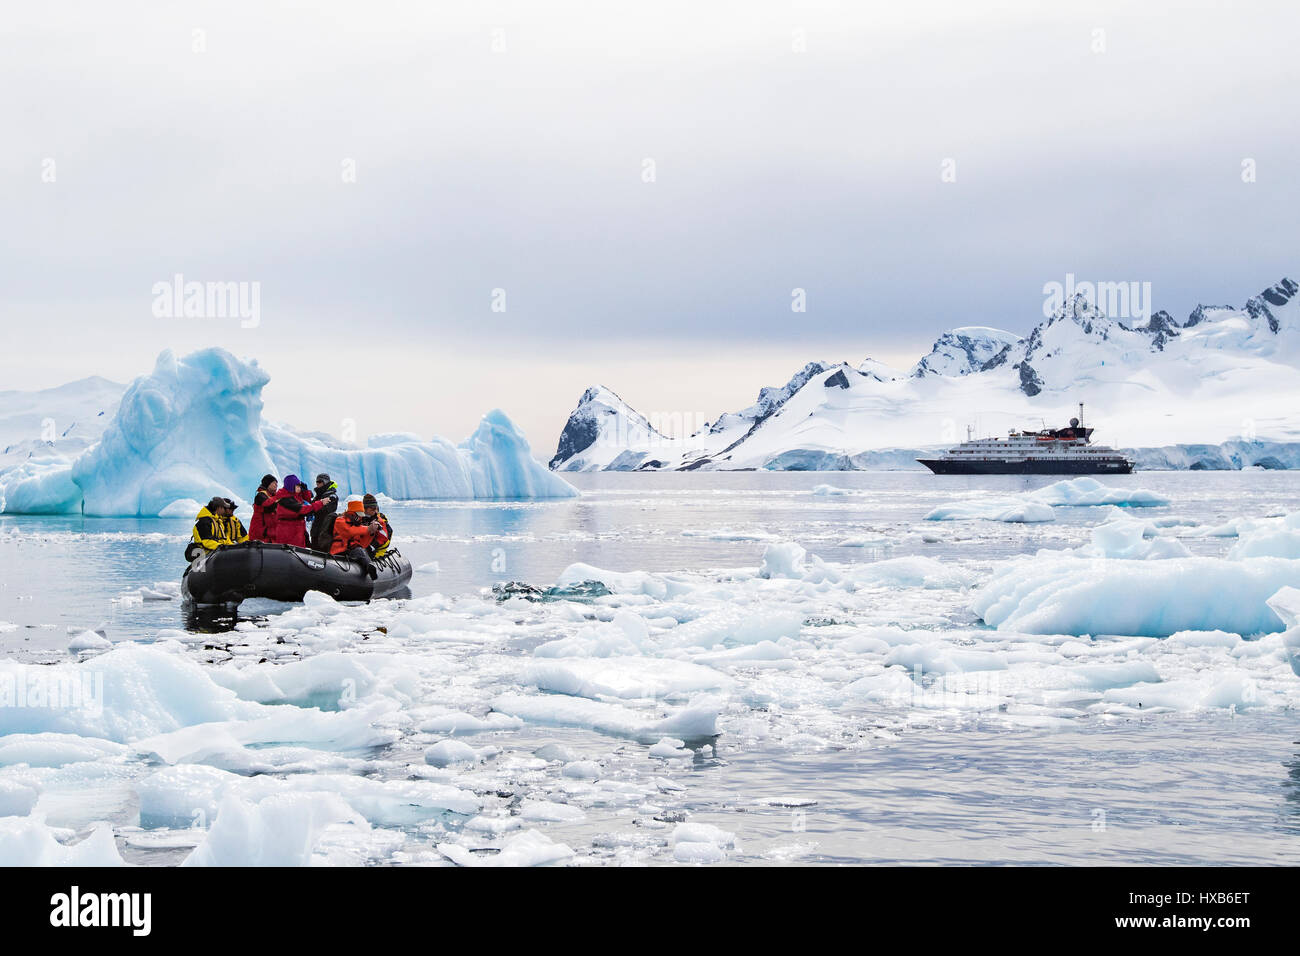 Antarctica tourists in Zodiac among Antarctic iceberg. - Stock Image